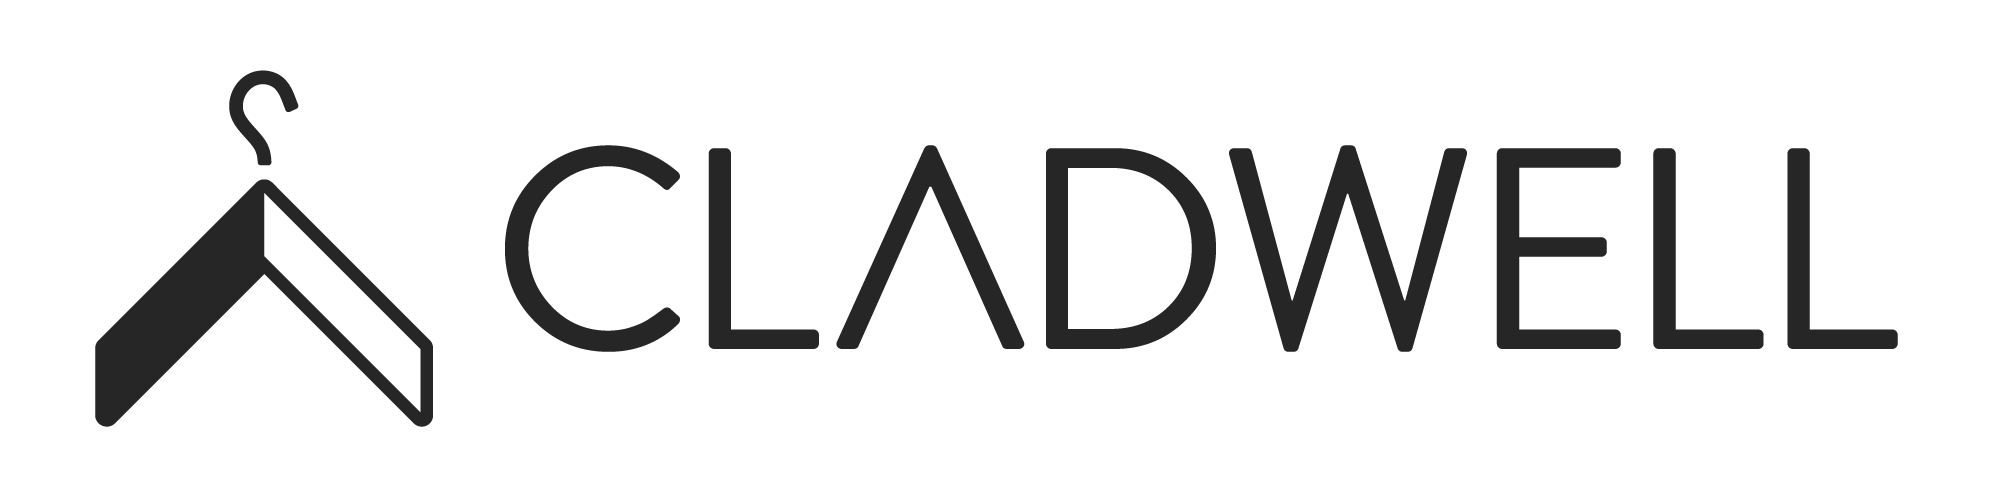 Cladwell-Logo-Full.png